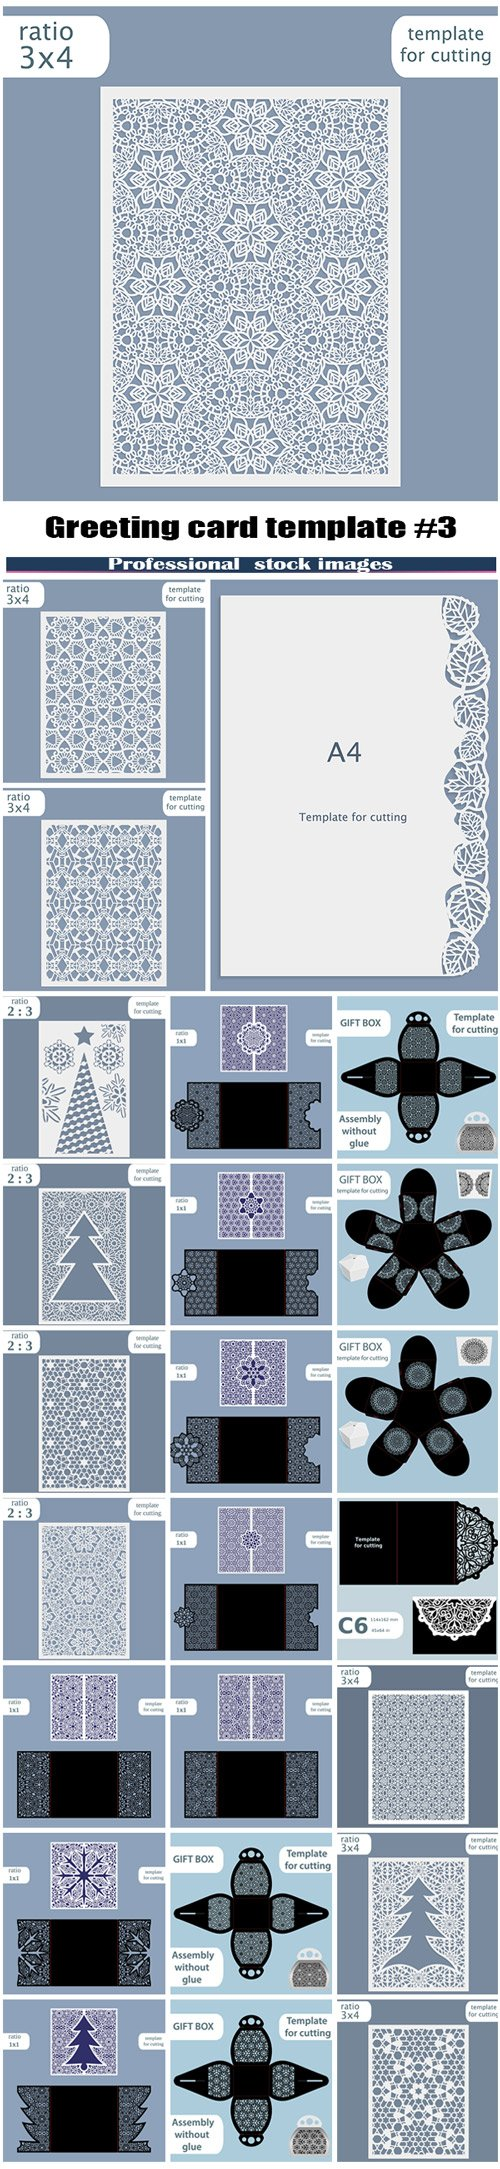 Greeting card template for cutting plotter #3